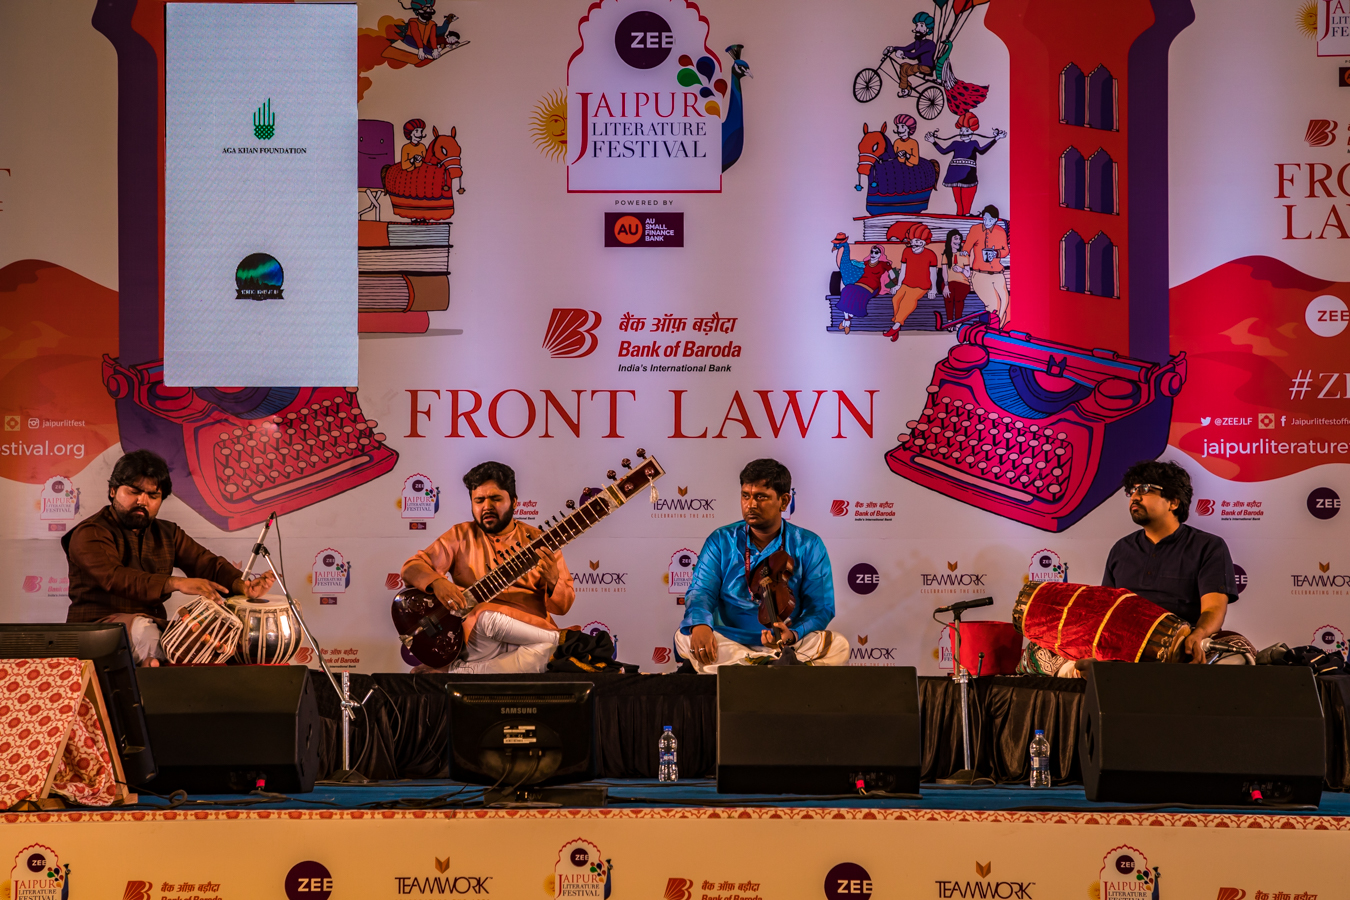 Jaipur Literature Festival Jan 2022